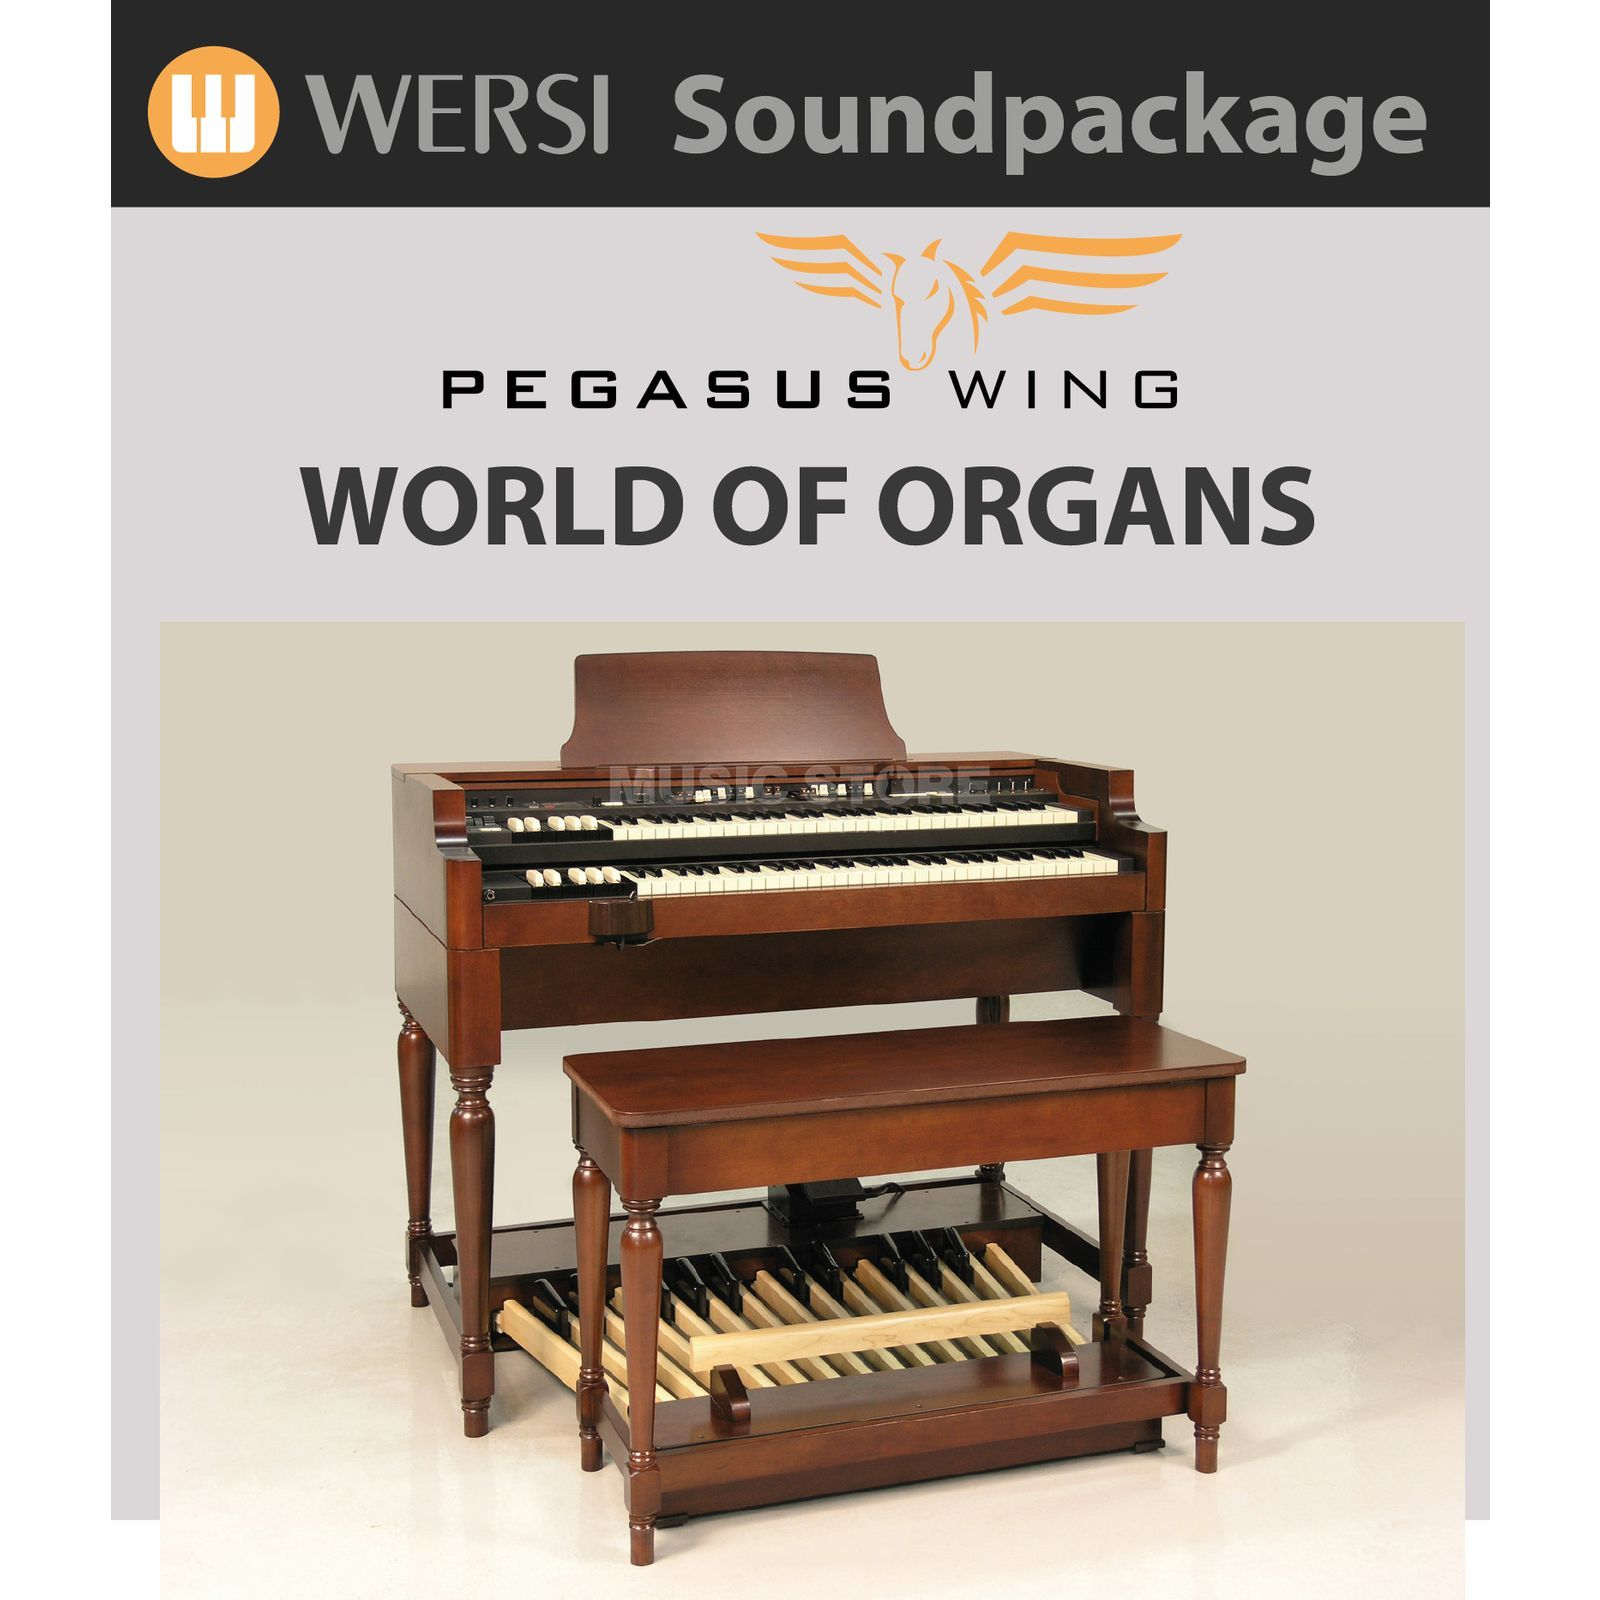 Wersi World of Organs Soundpack für Pegasus Wing Produktbild